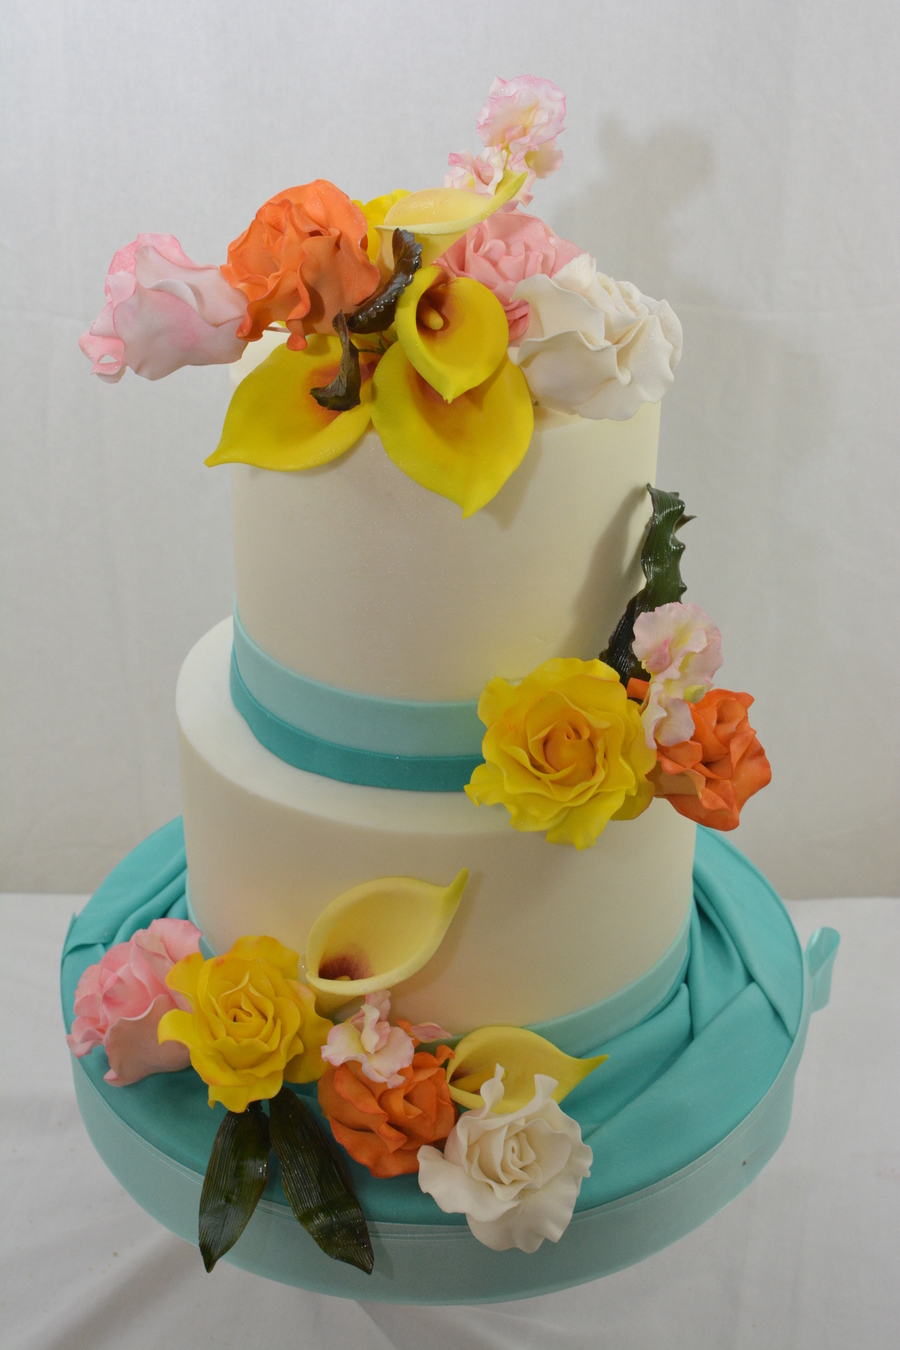 6 And 8 Inch Cake Finished In Buttecream Fondant Accents And Gumpaste Flowers on Cake Central